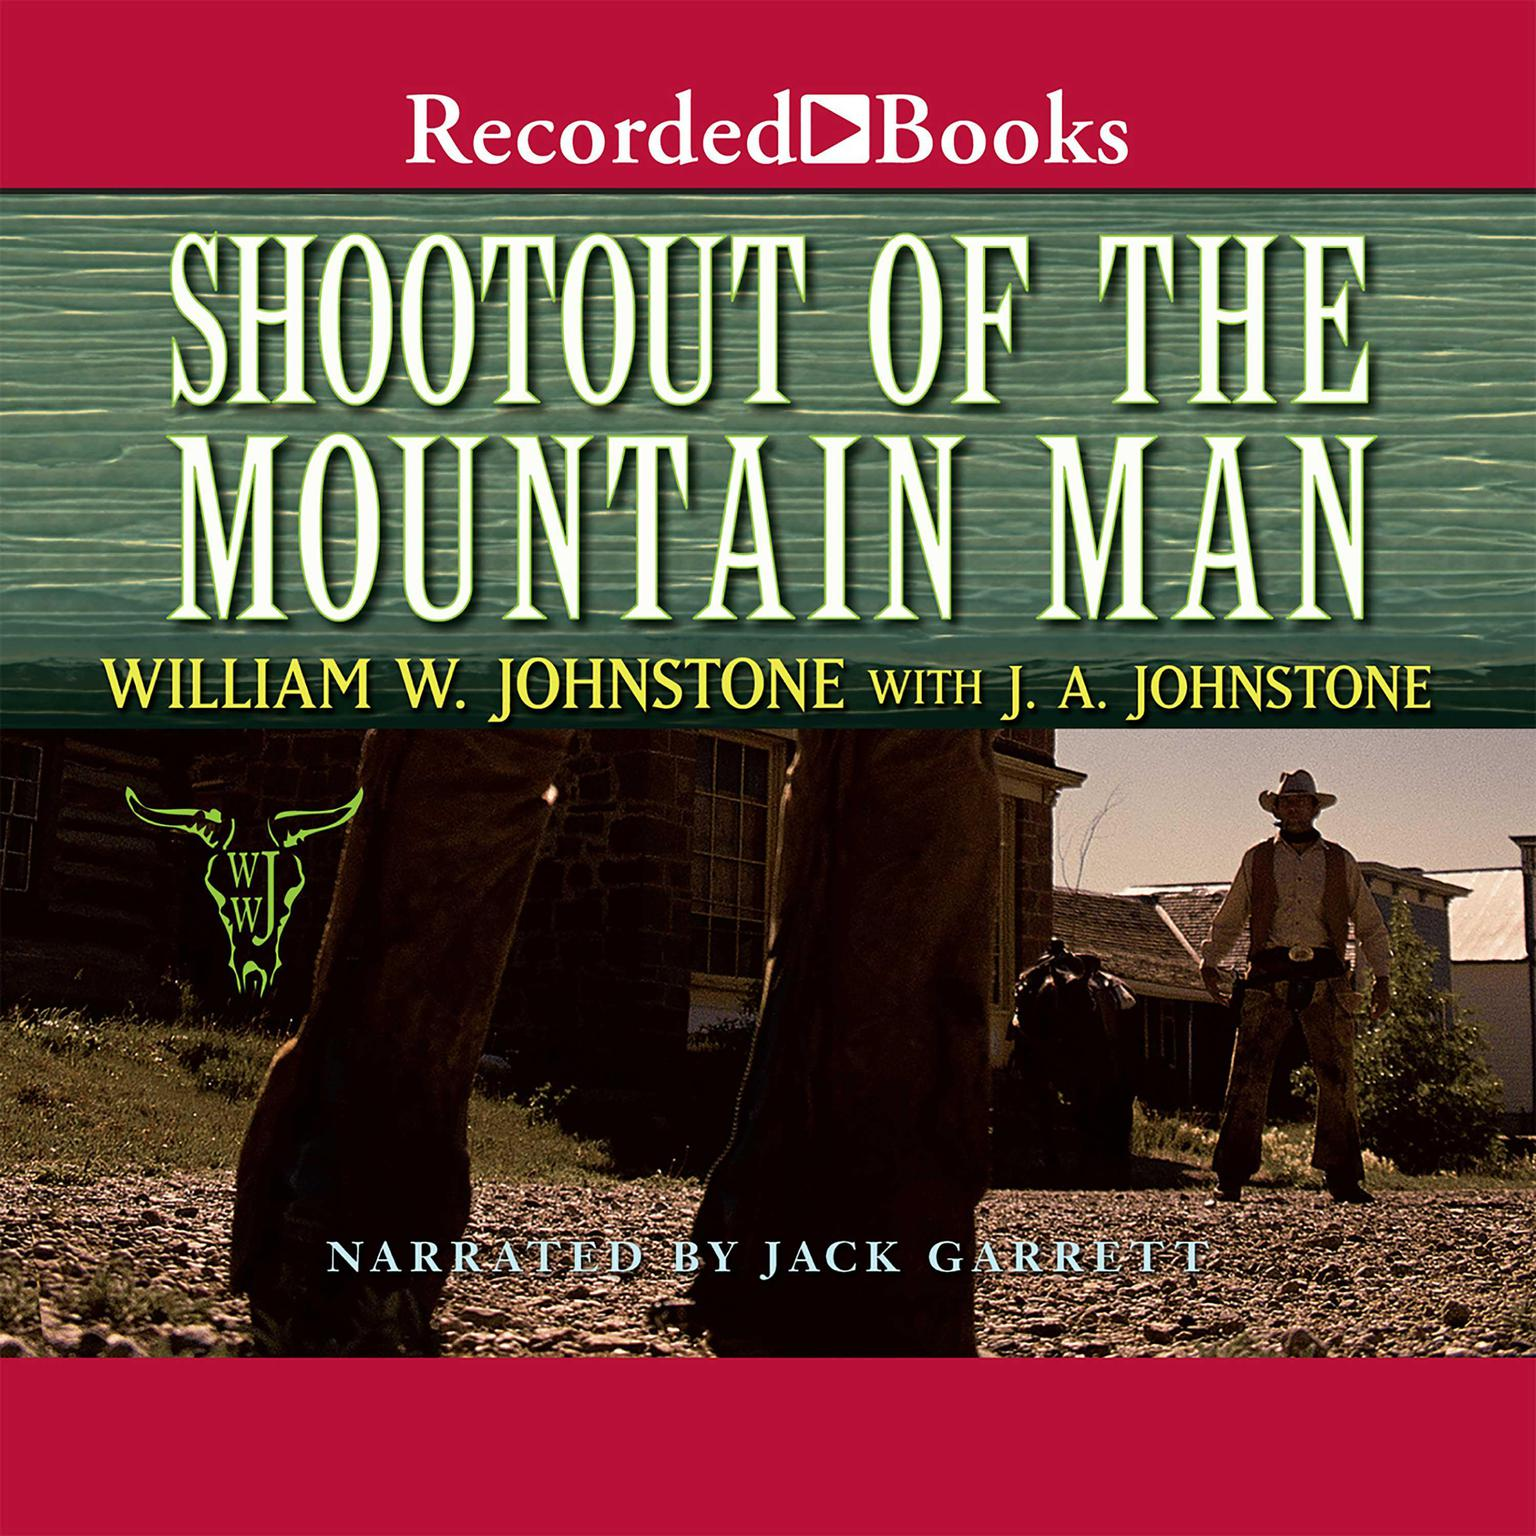 Printable Shootout of the Mountain Man Audiobook Cover Art